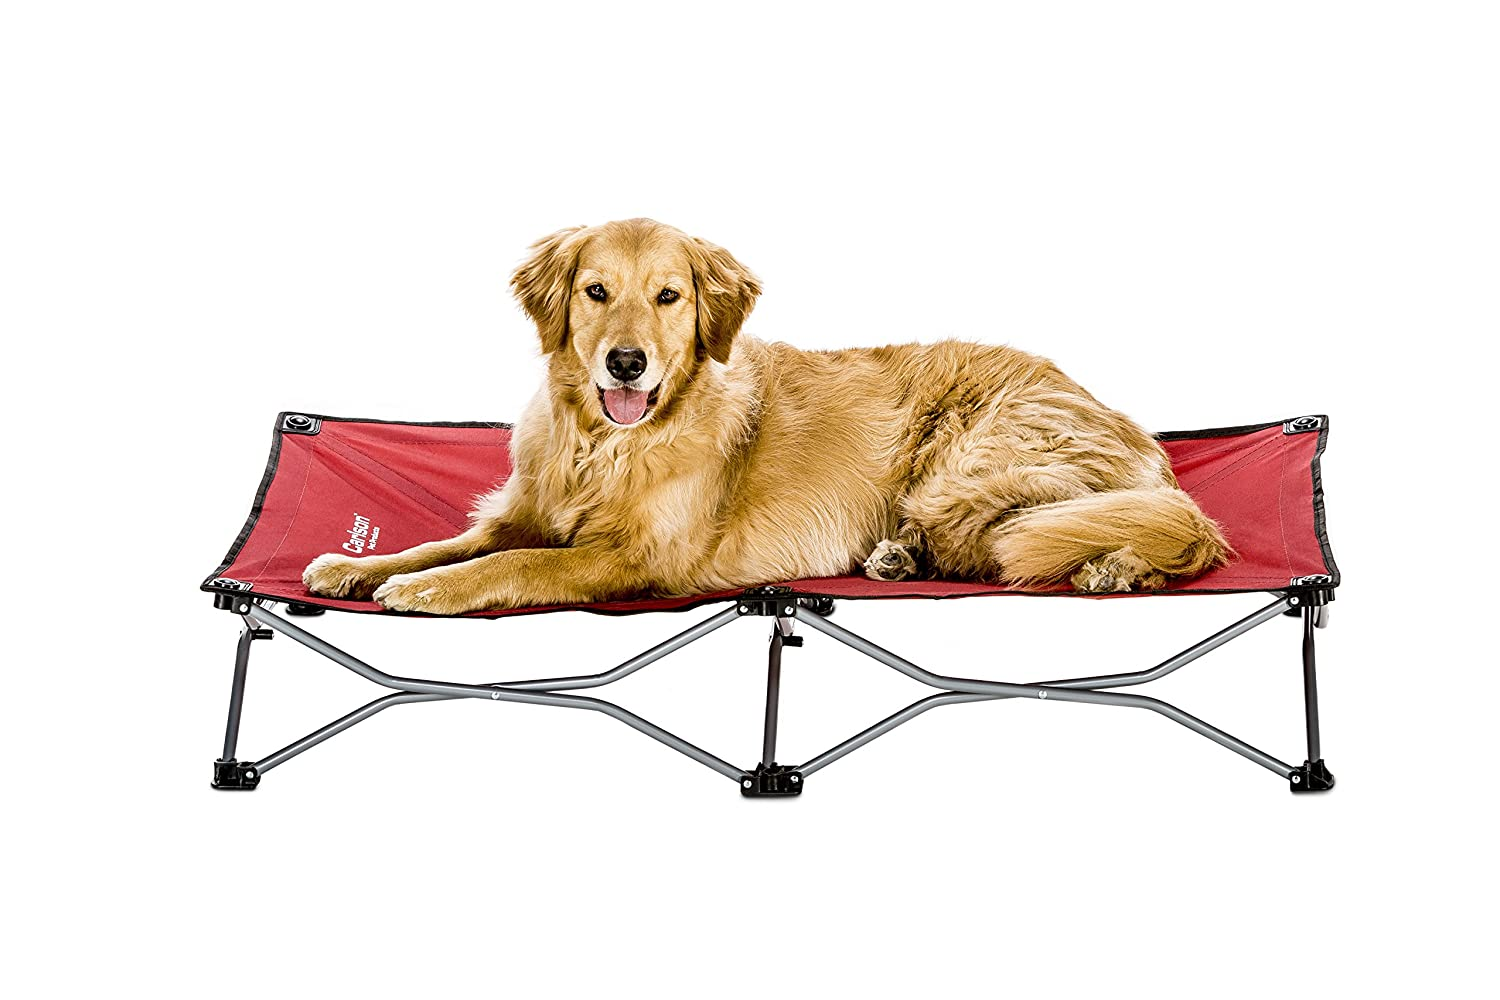 Carlson Pet Products Extra Large Elevated Folding Pet Bed 47 Inches Long, Includes Travel Case, Red